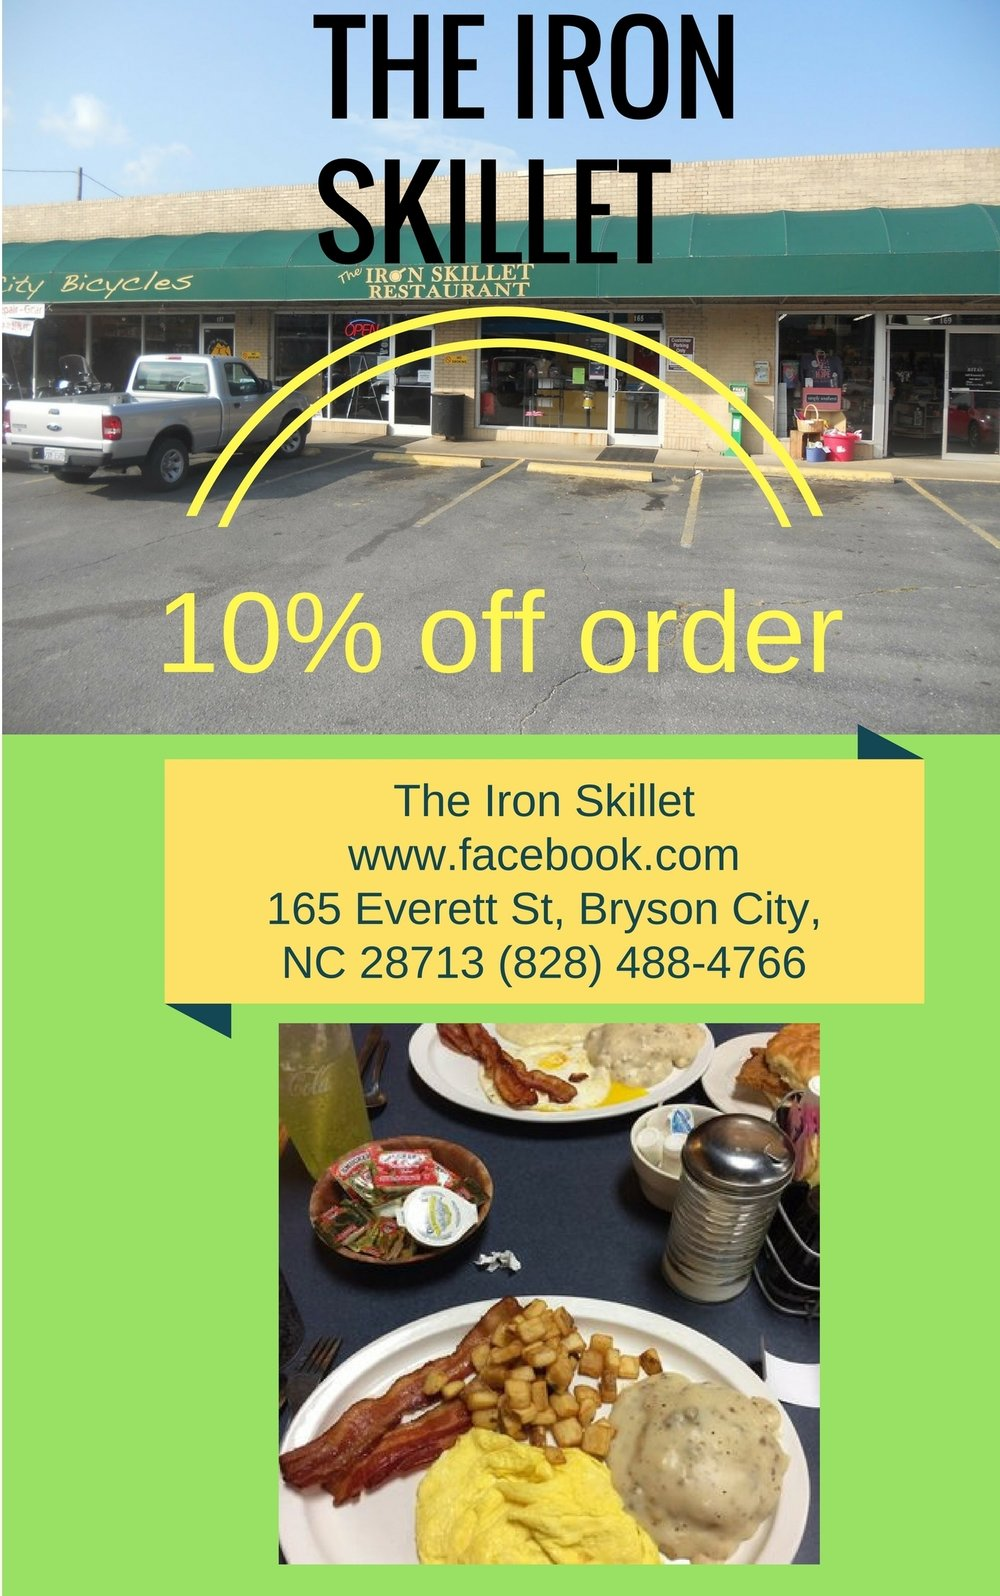 The Iron Skillet. 10% OFF Order